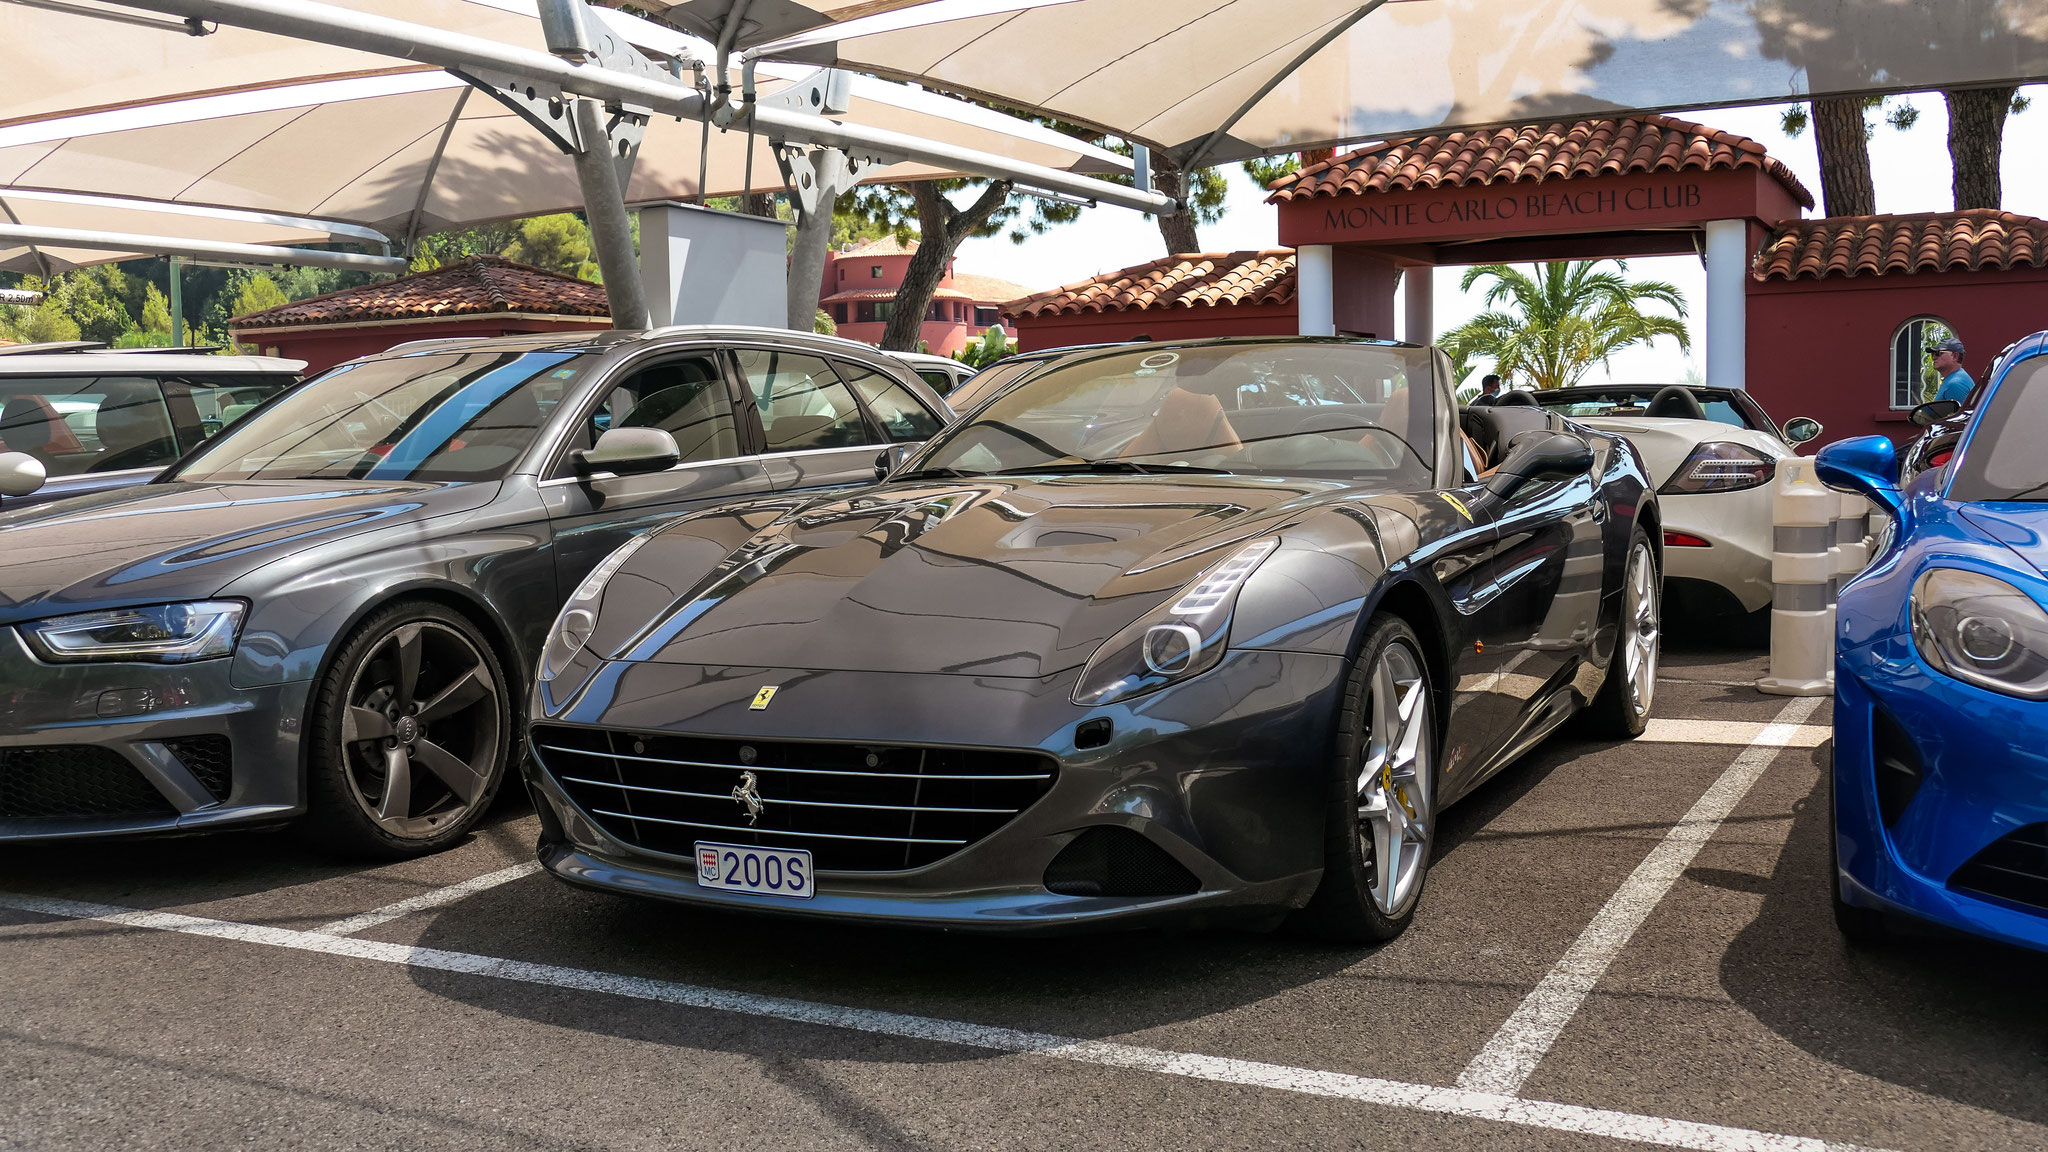 Ferrari California T - 200S (MC)